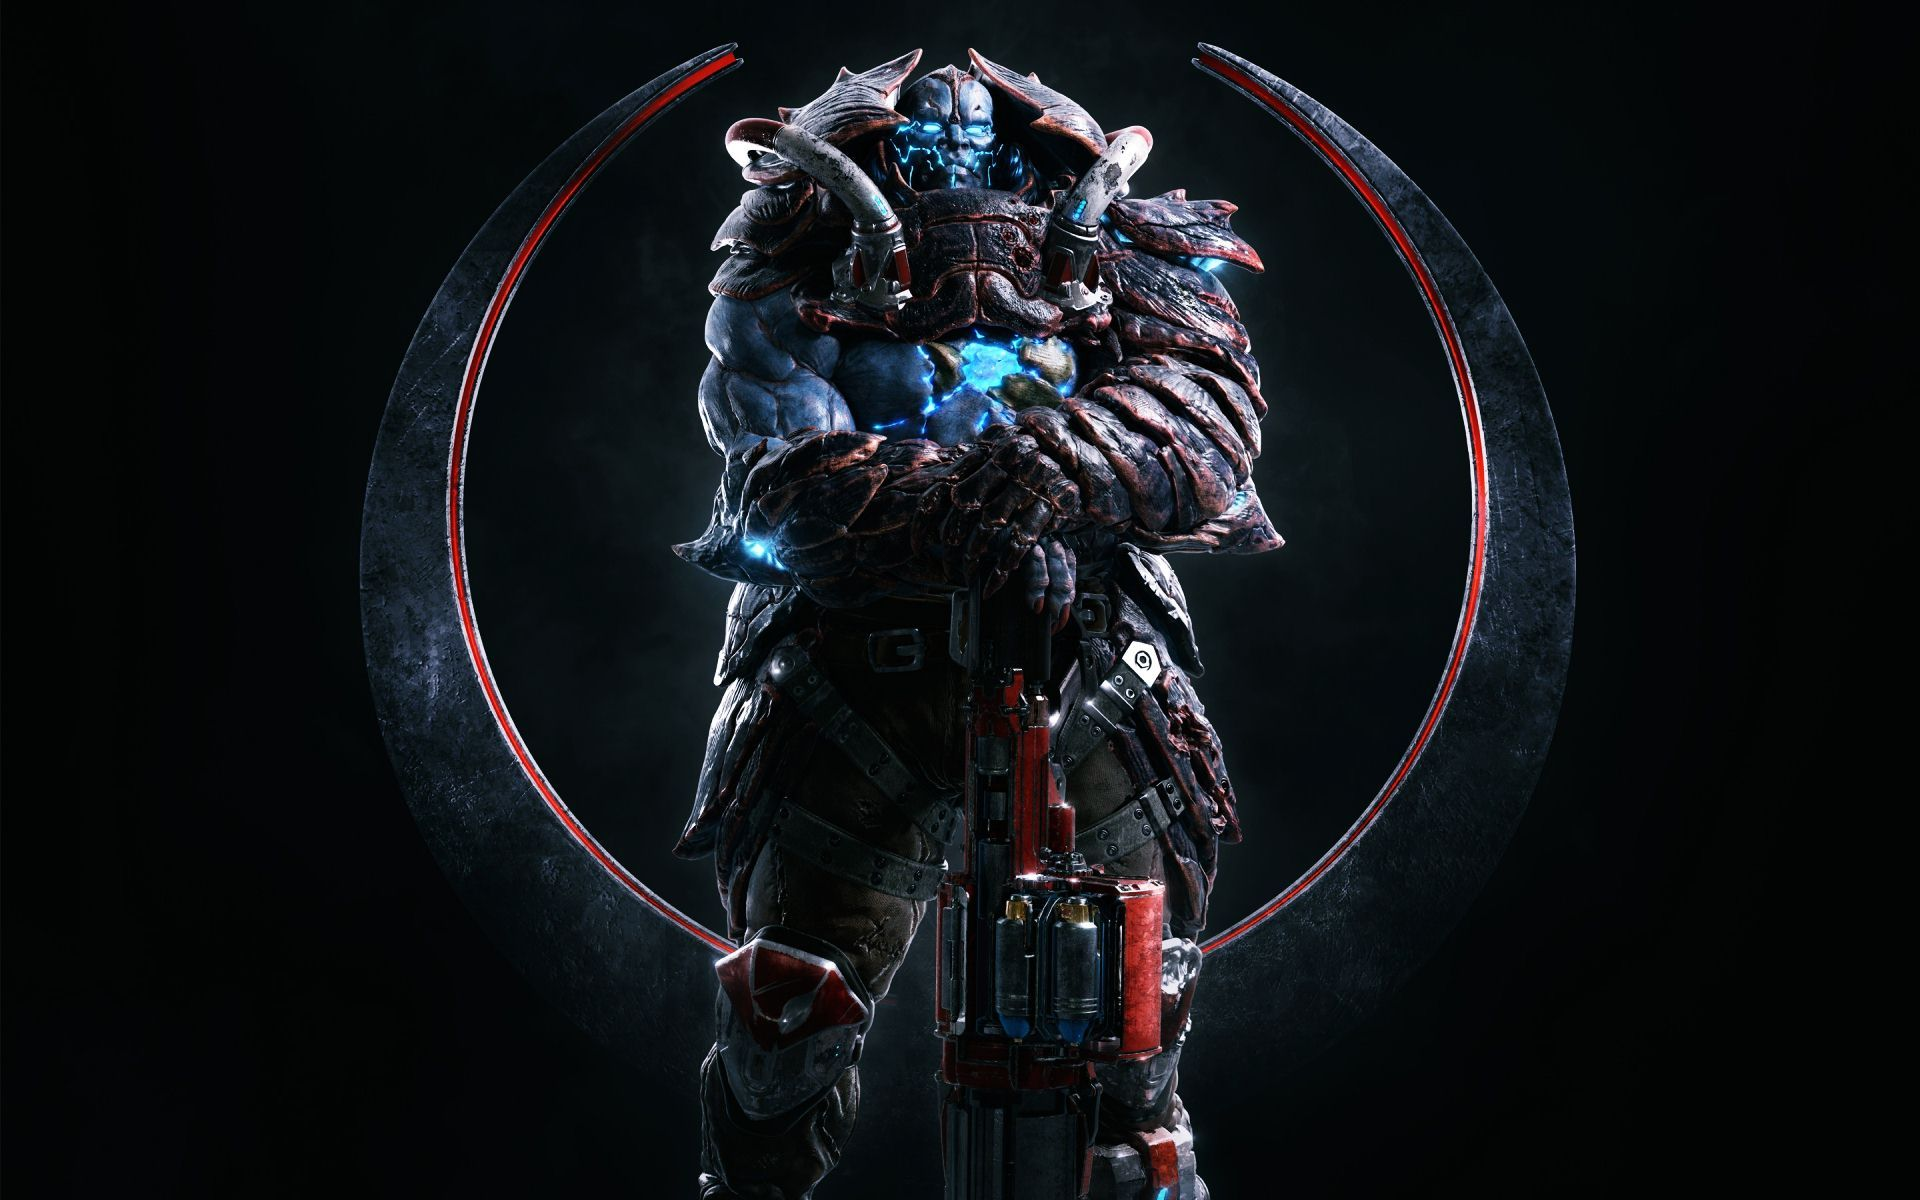 Quake Champions Hd Wallpapers Backgrounds Wallpaper Desktop Wallpaper Keys Art Iphone Wallpaper